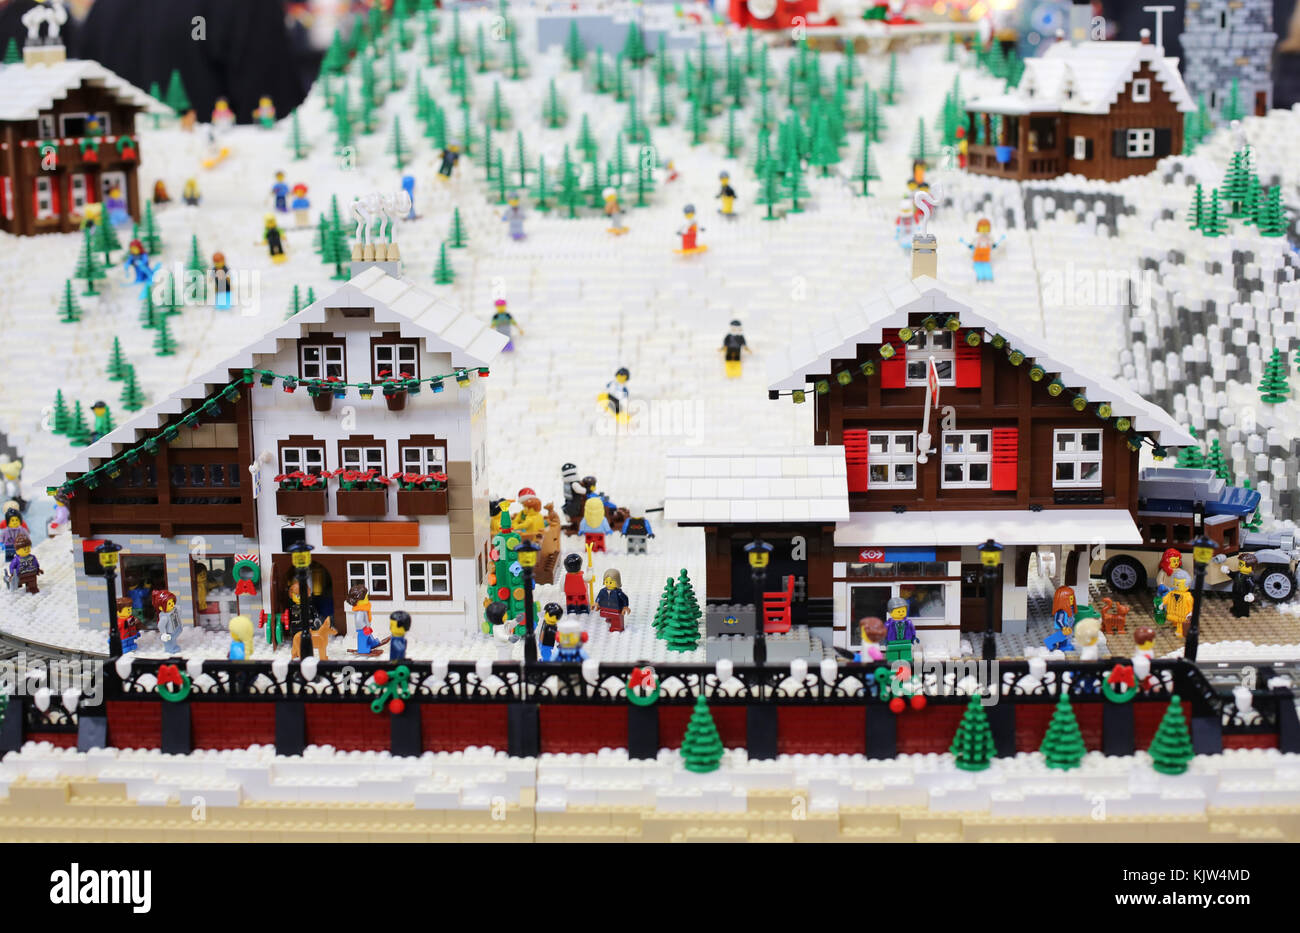 Minneapolis, Minnesota, USA. 25th November, 2017. A depiction of a ski resort, made entirely of LEGO bricks, on - Stock Image